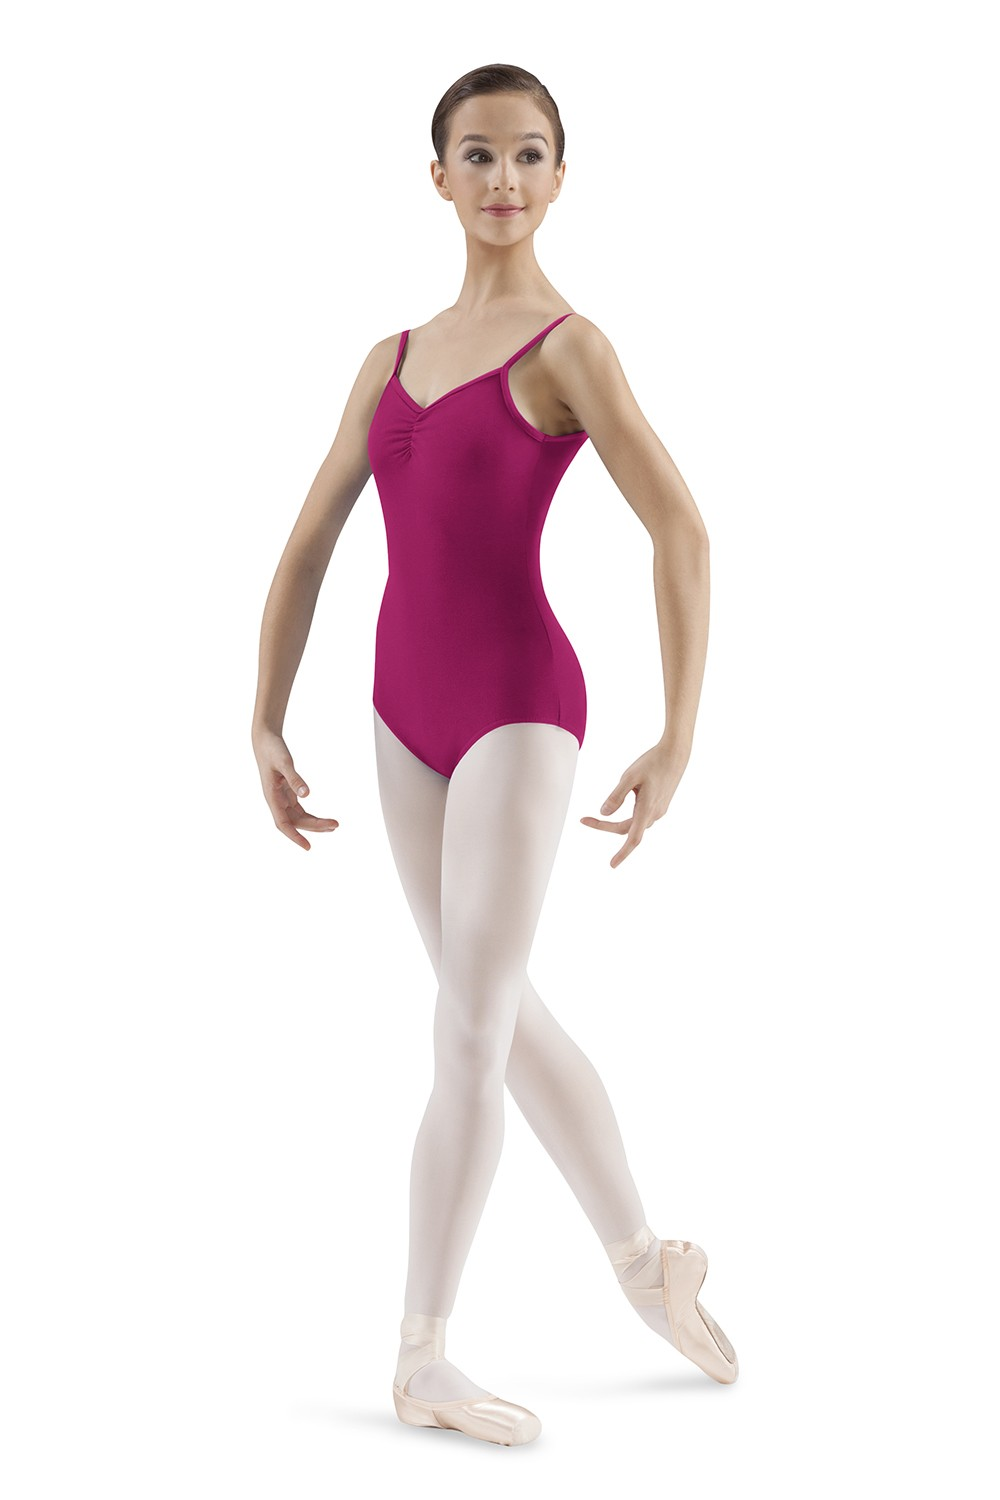 Maillot Camisola Con Escote En V Women's Dance Leotards